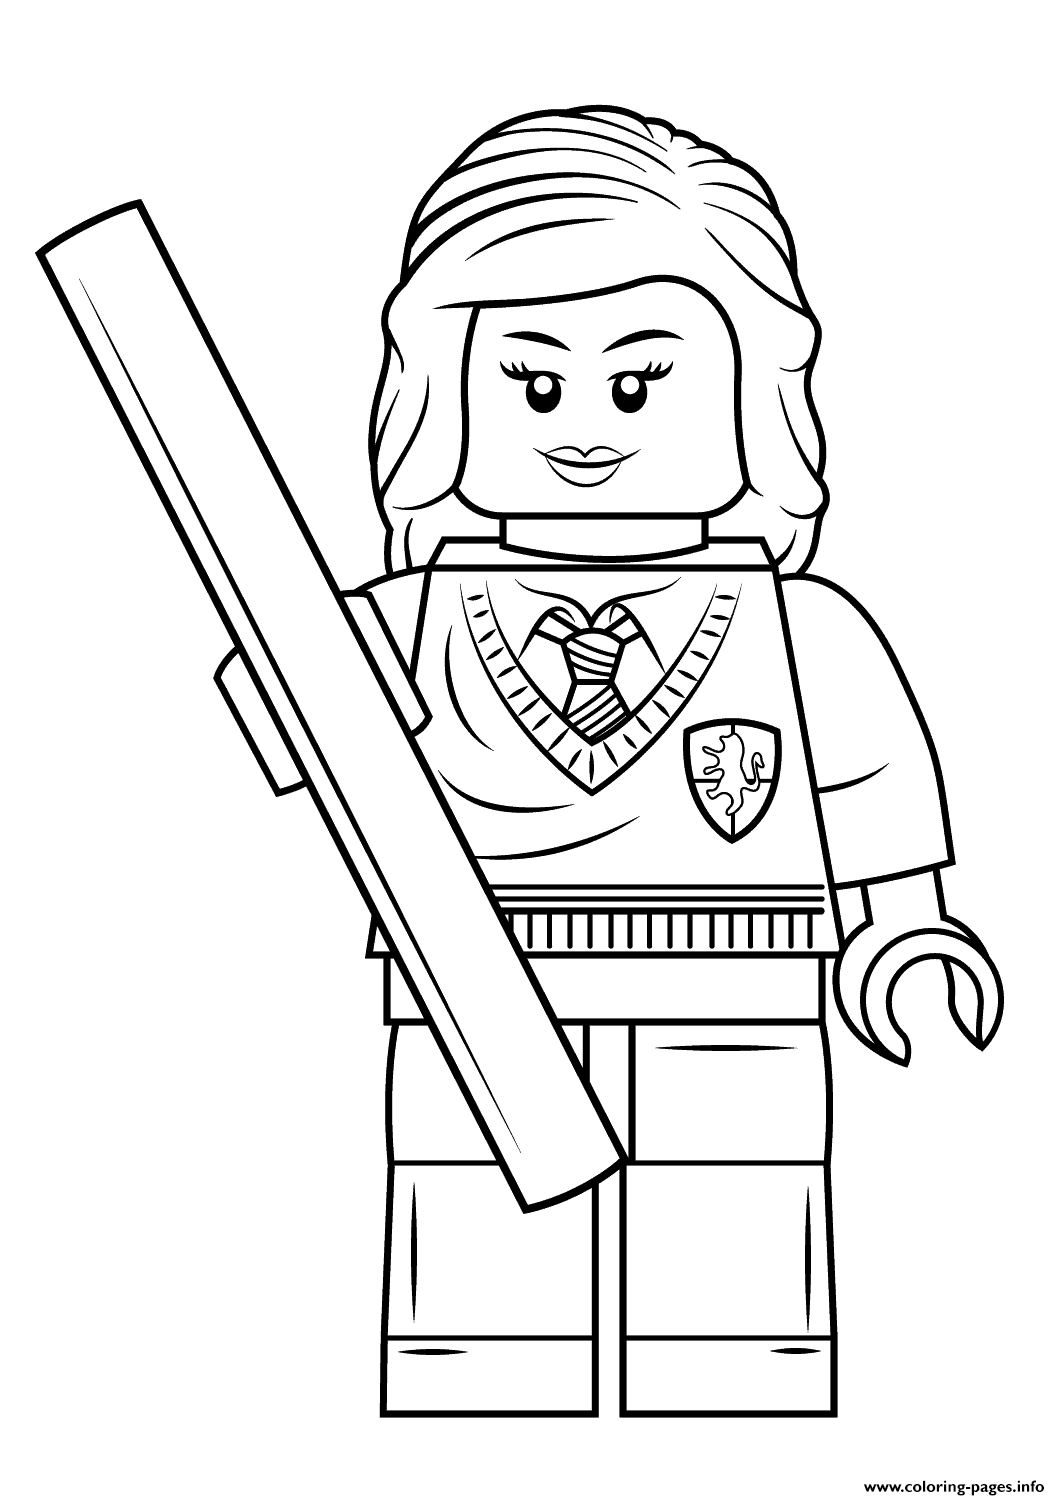 Free Harry Potter Coloring Pages Printable For Humorous Competitive